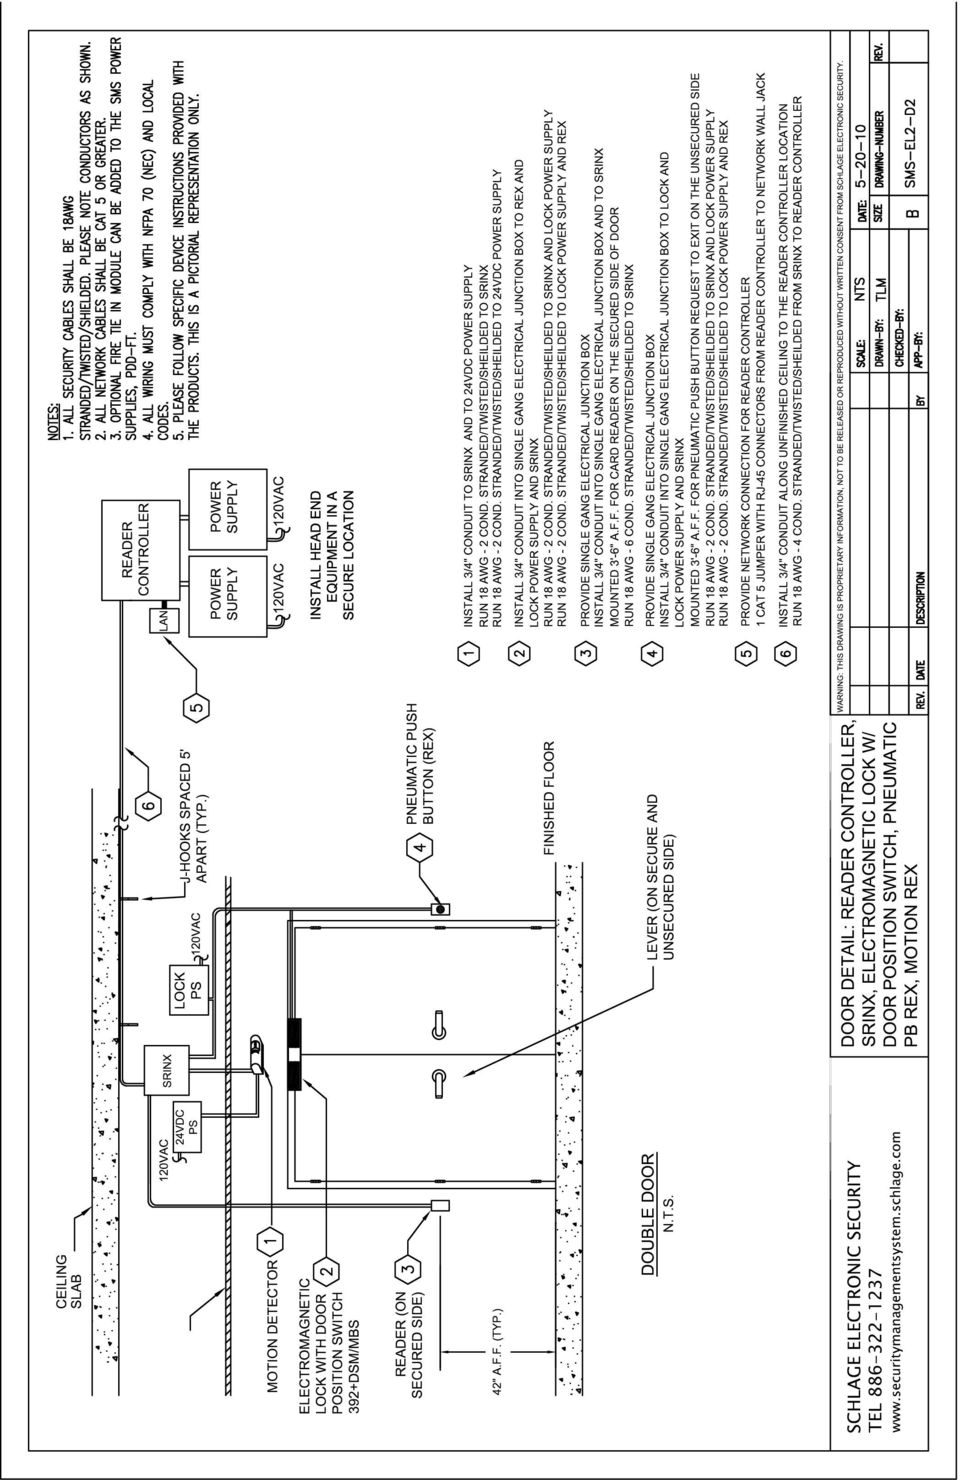 hight resolution of 14 sms wiring portfolio section 3 mortise lock diagrams wiring details for the reader controller and the srinx reader interface diagram page sms ml1 w1